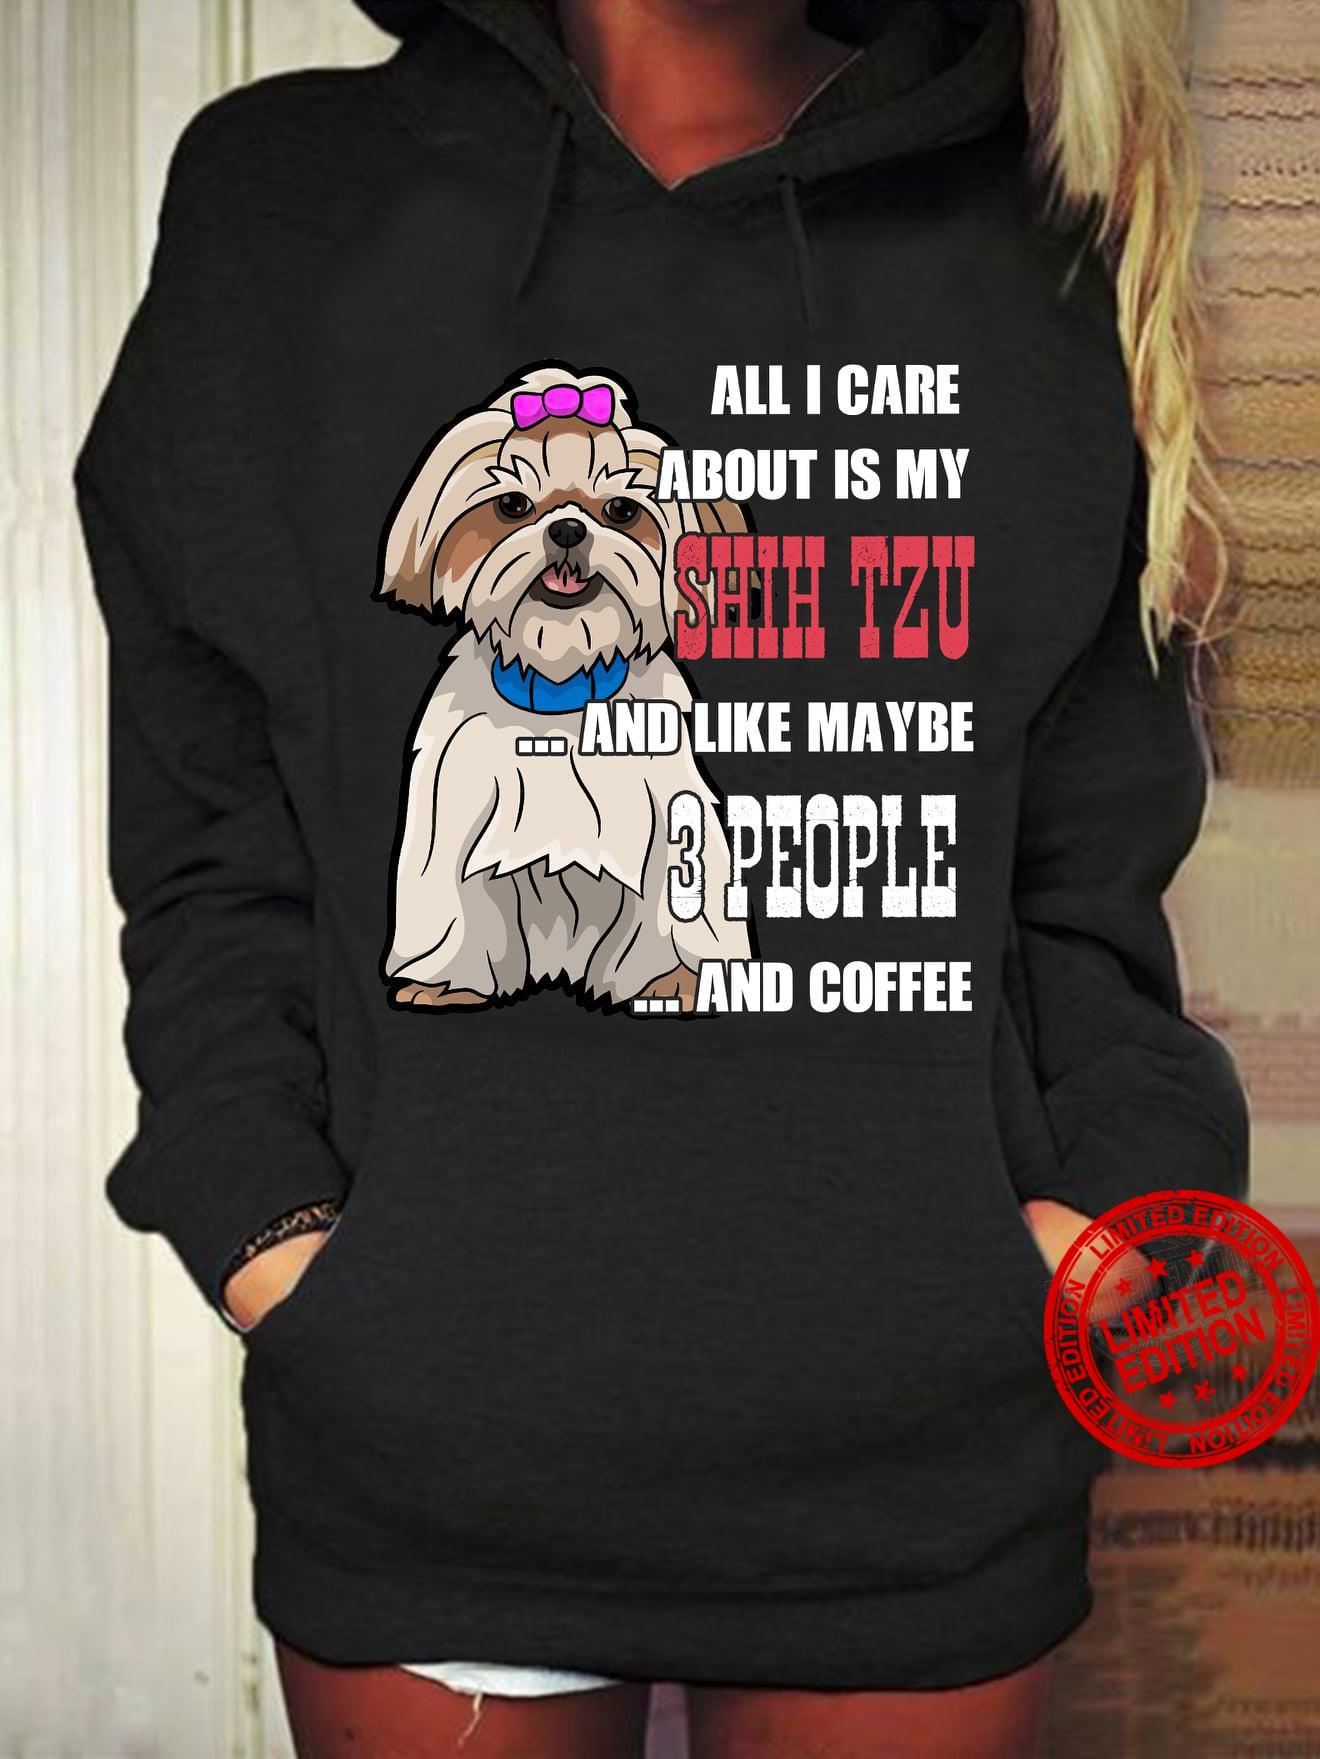 All I Care About Is My Shih Tzu And Like maybe 3 People Hoodies T-Shirt